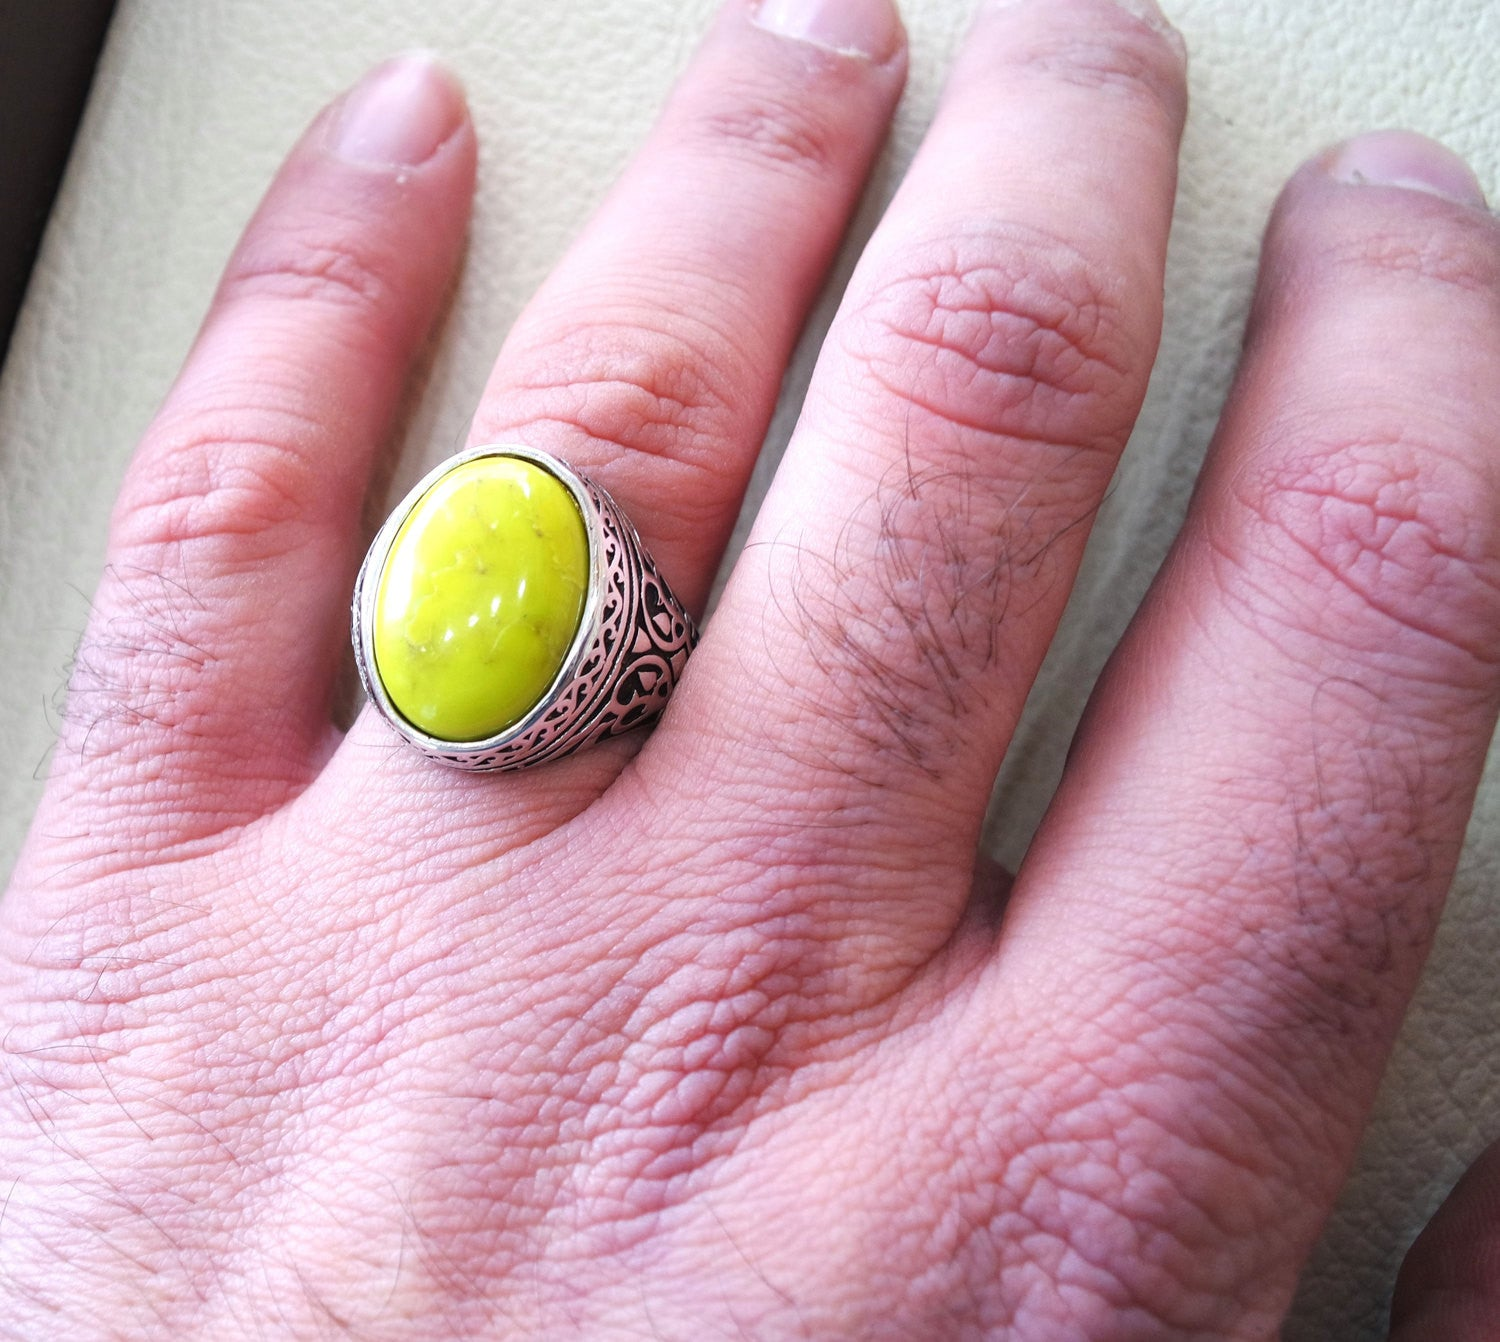 mohave yellow turquoise natural stone semi precious oval gem sterling silver 925 men ring jewelry ottoman style fast shipping all sizes